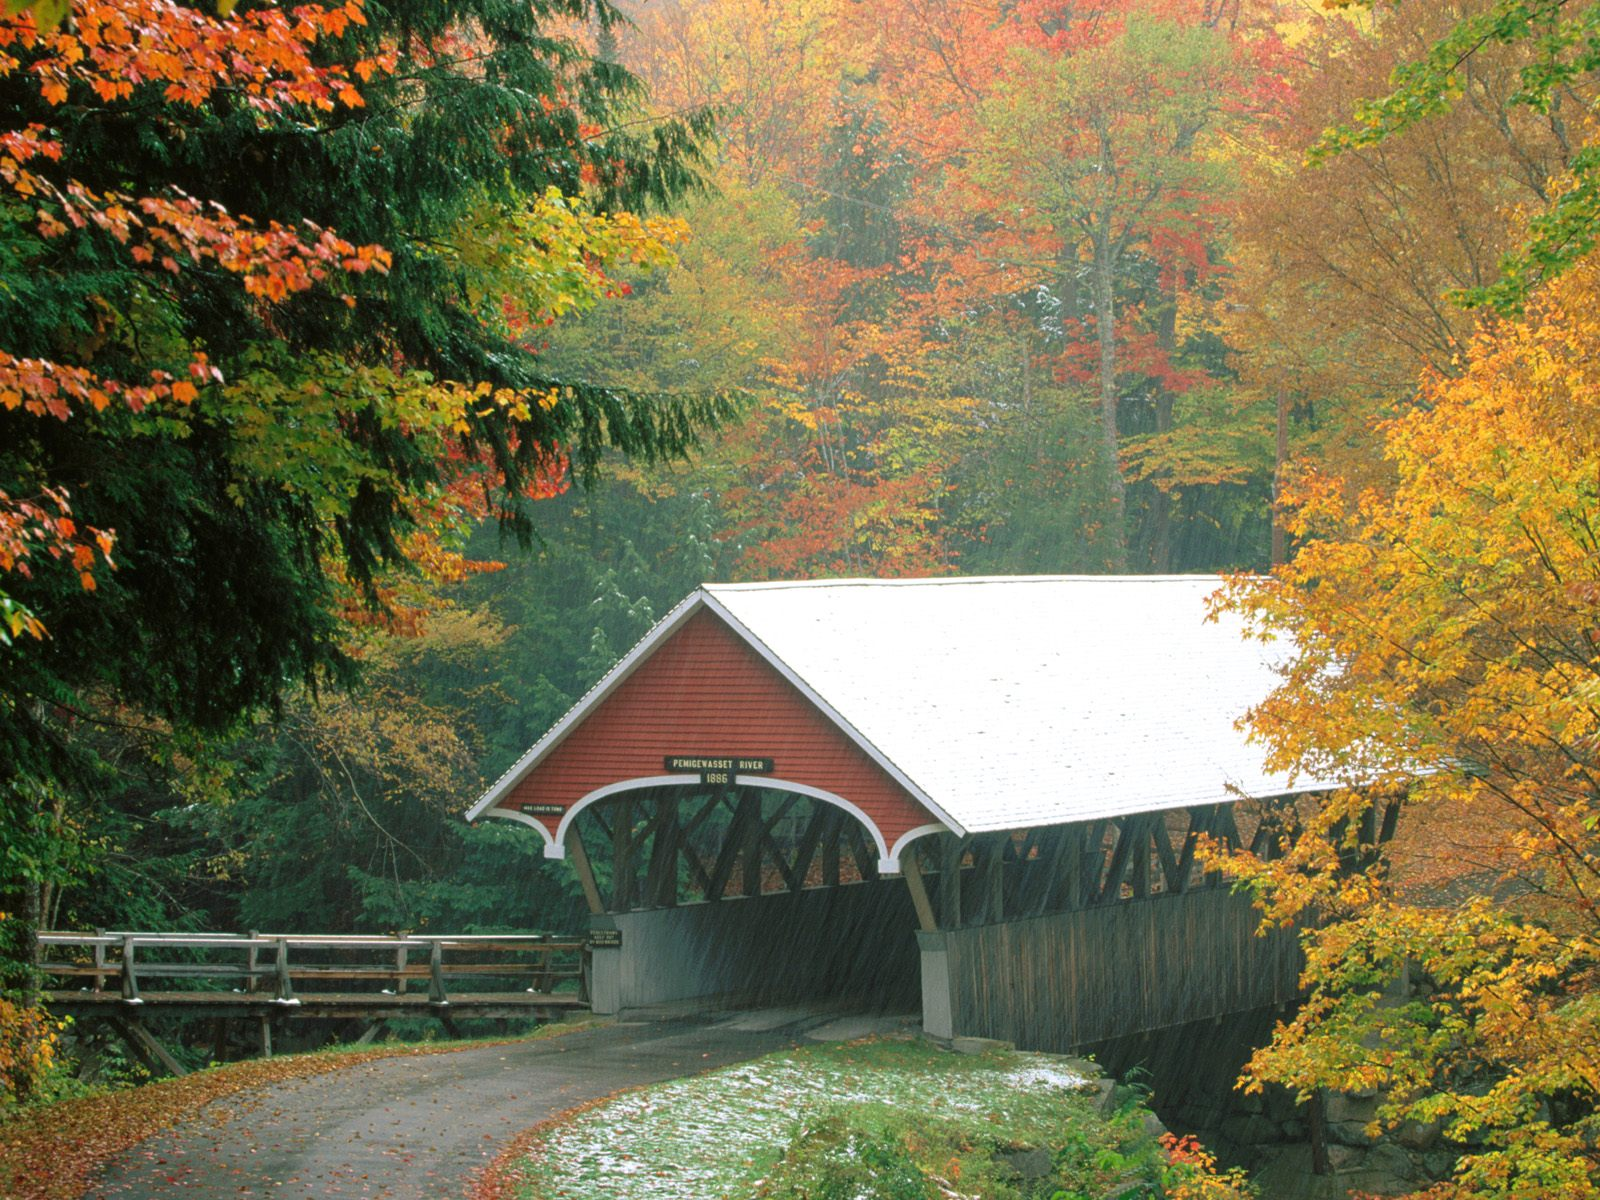 Flume covered bridge in autumn franconia notch state park new